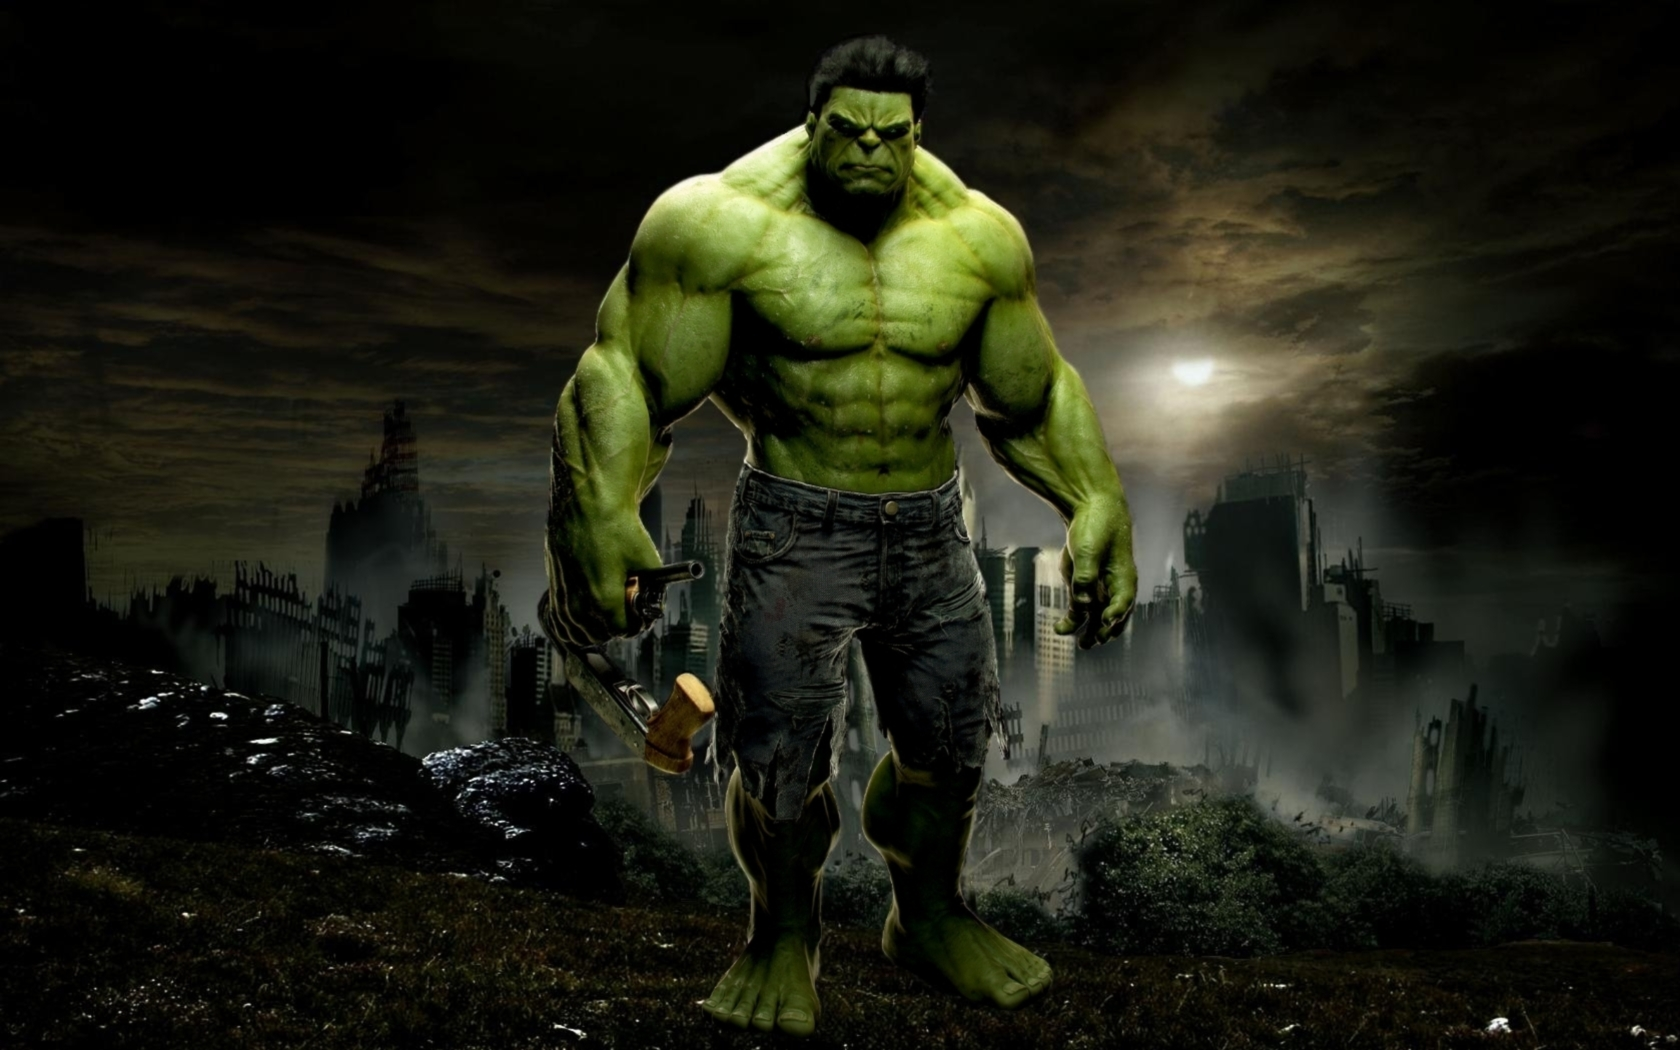 Hulk images download hd desktop wallpapers 4k hd - Hulk hd images free download ...